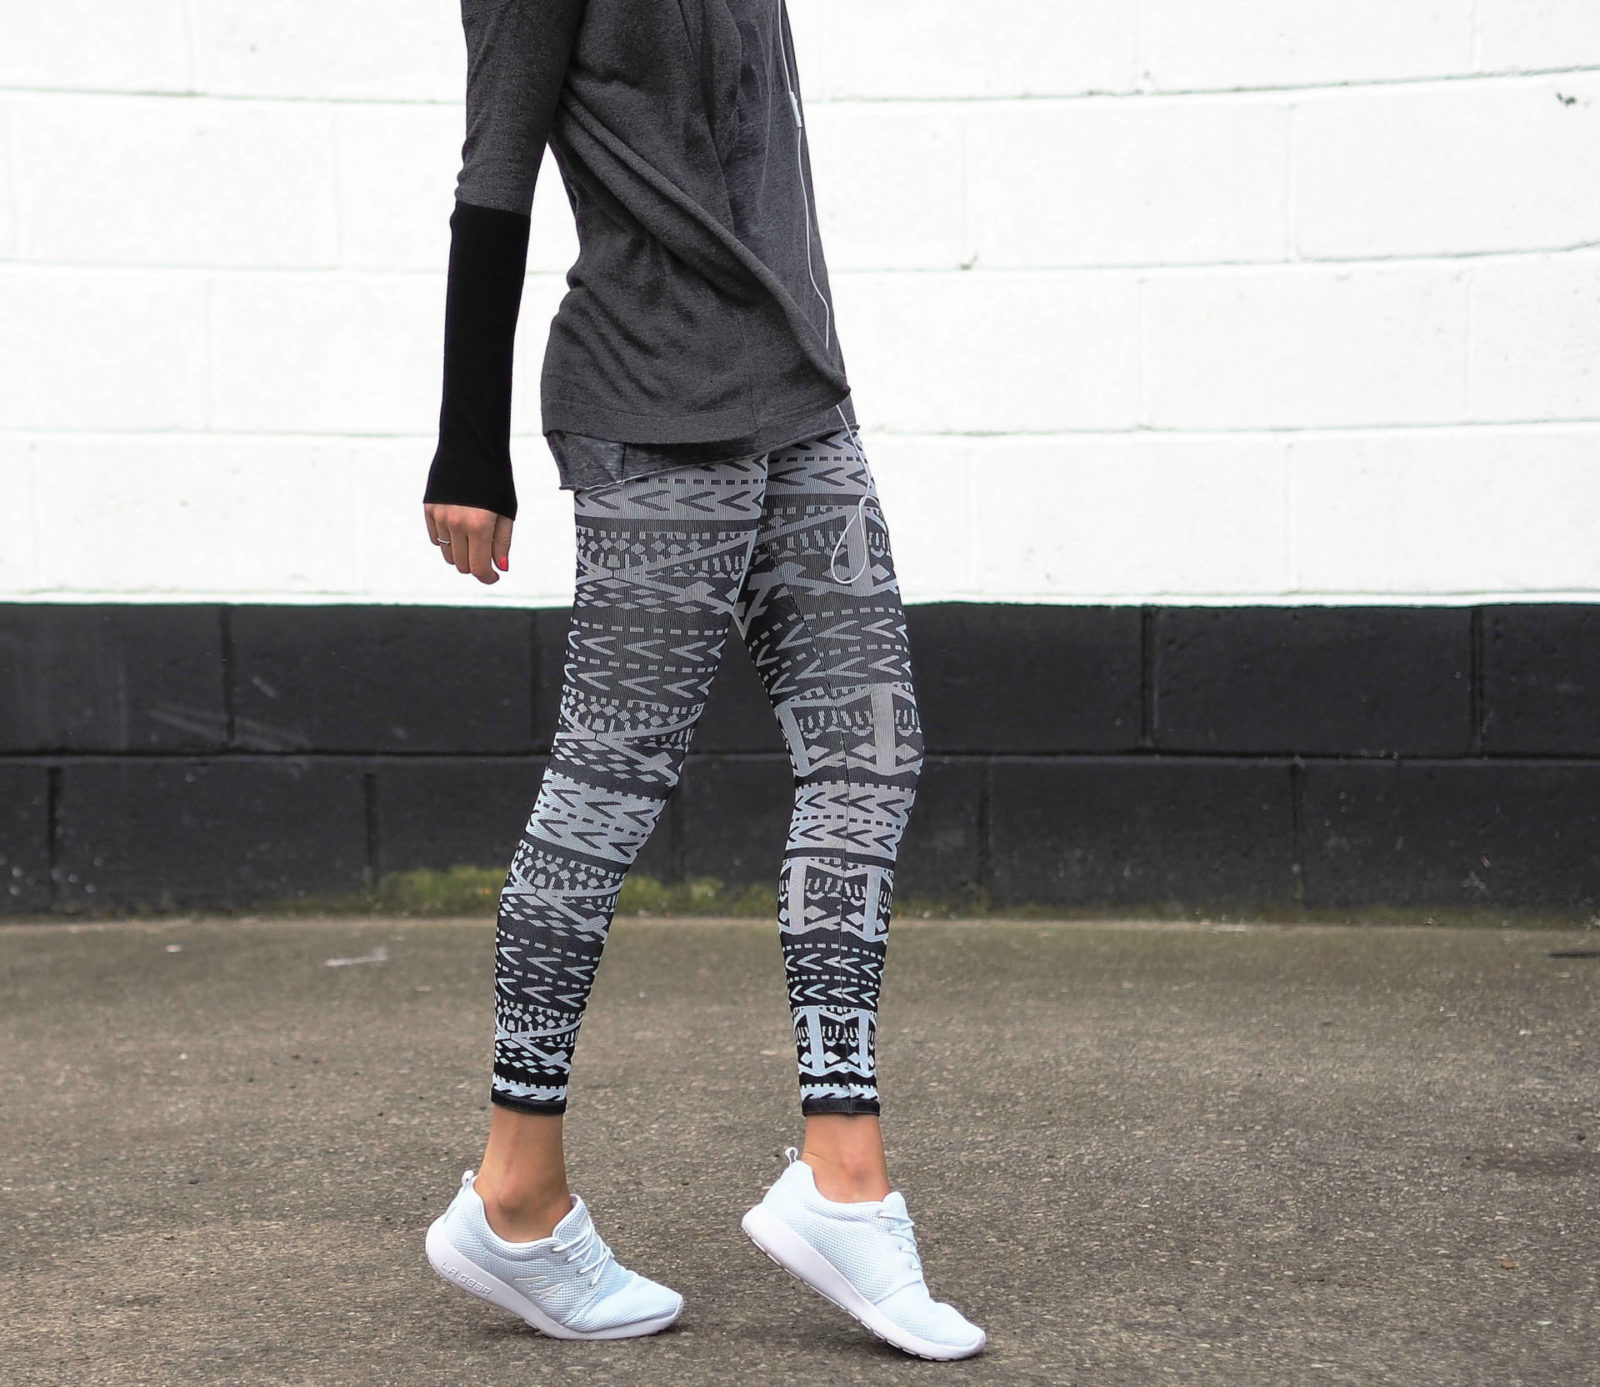 Athletic Leisure Casual Sporty Clothes